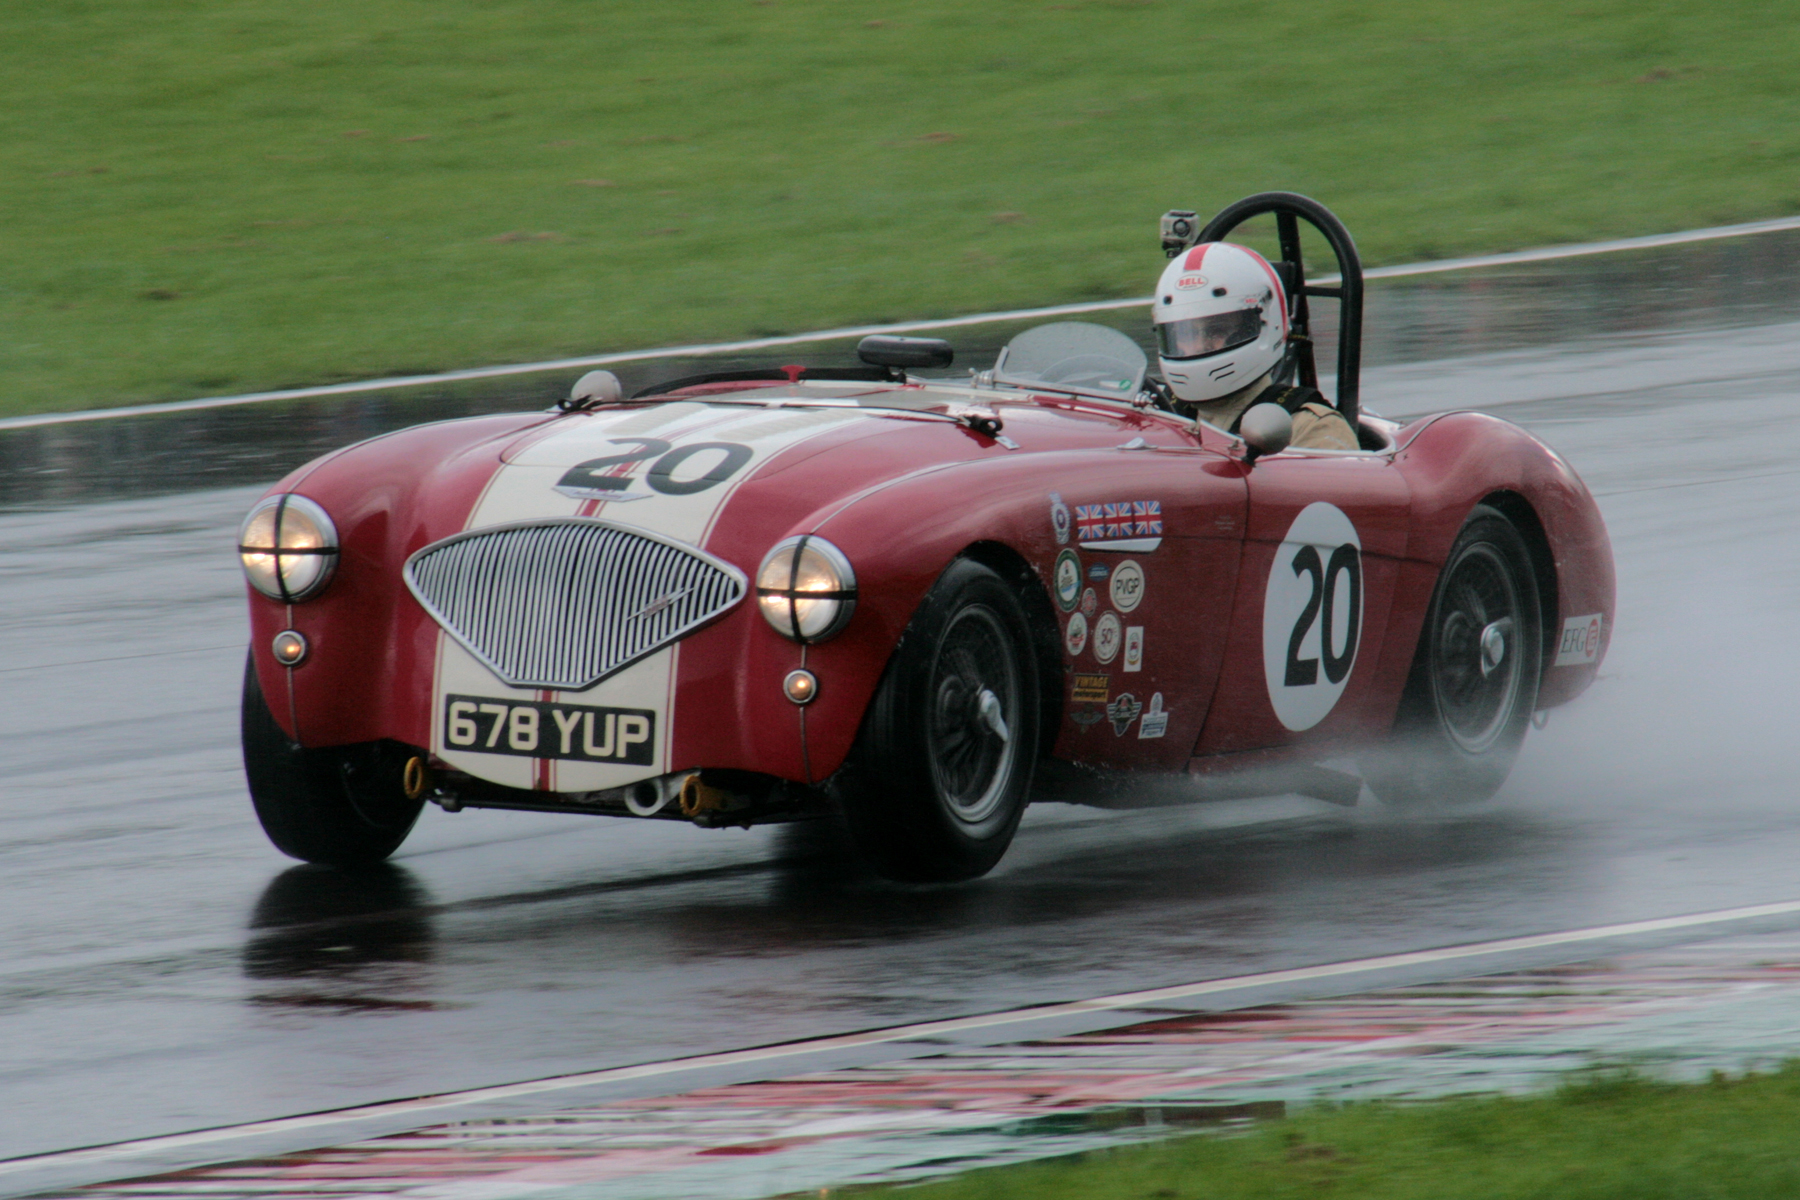 Jonathan Abecassis presses on in his Austin Healey 100/4, at this stage lying 5th.                            Photo - John Turner